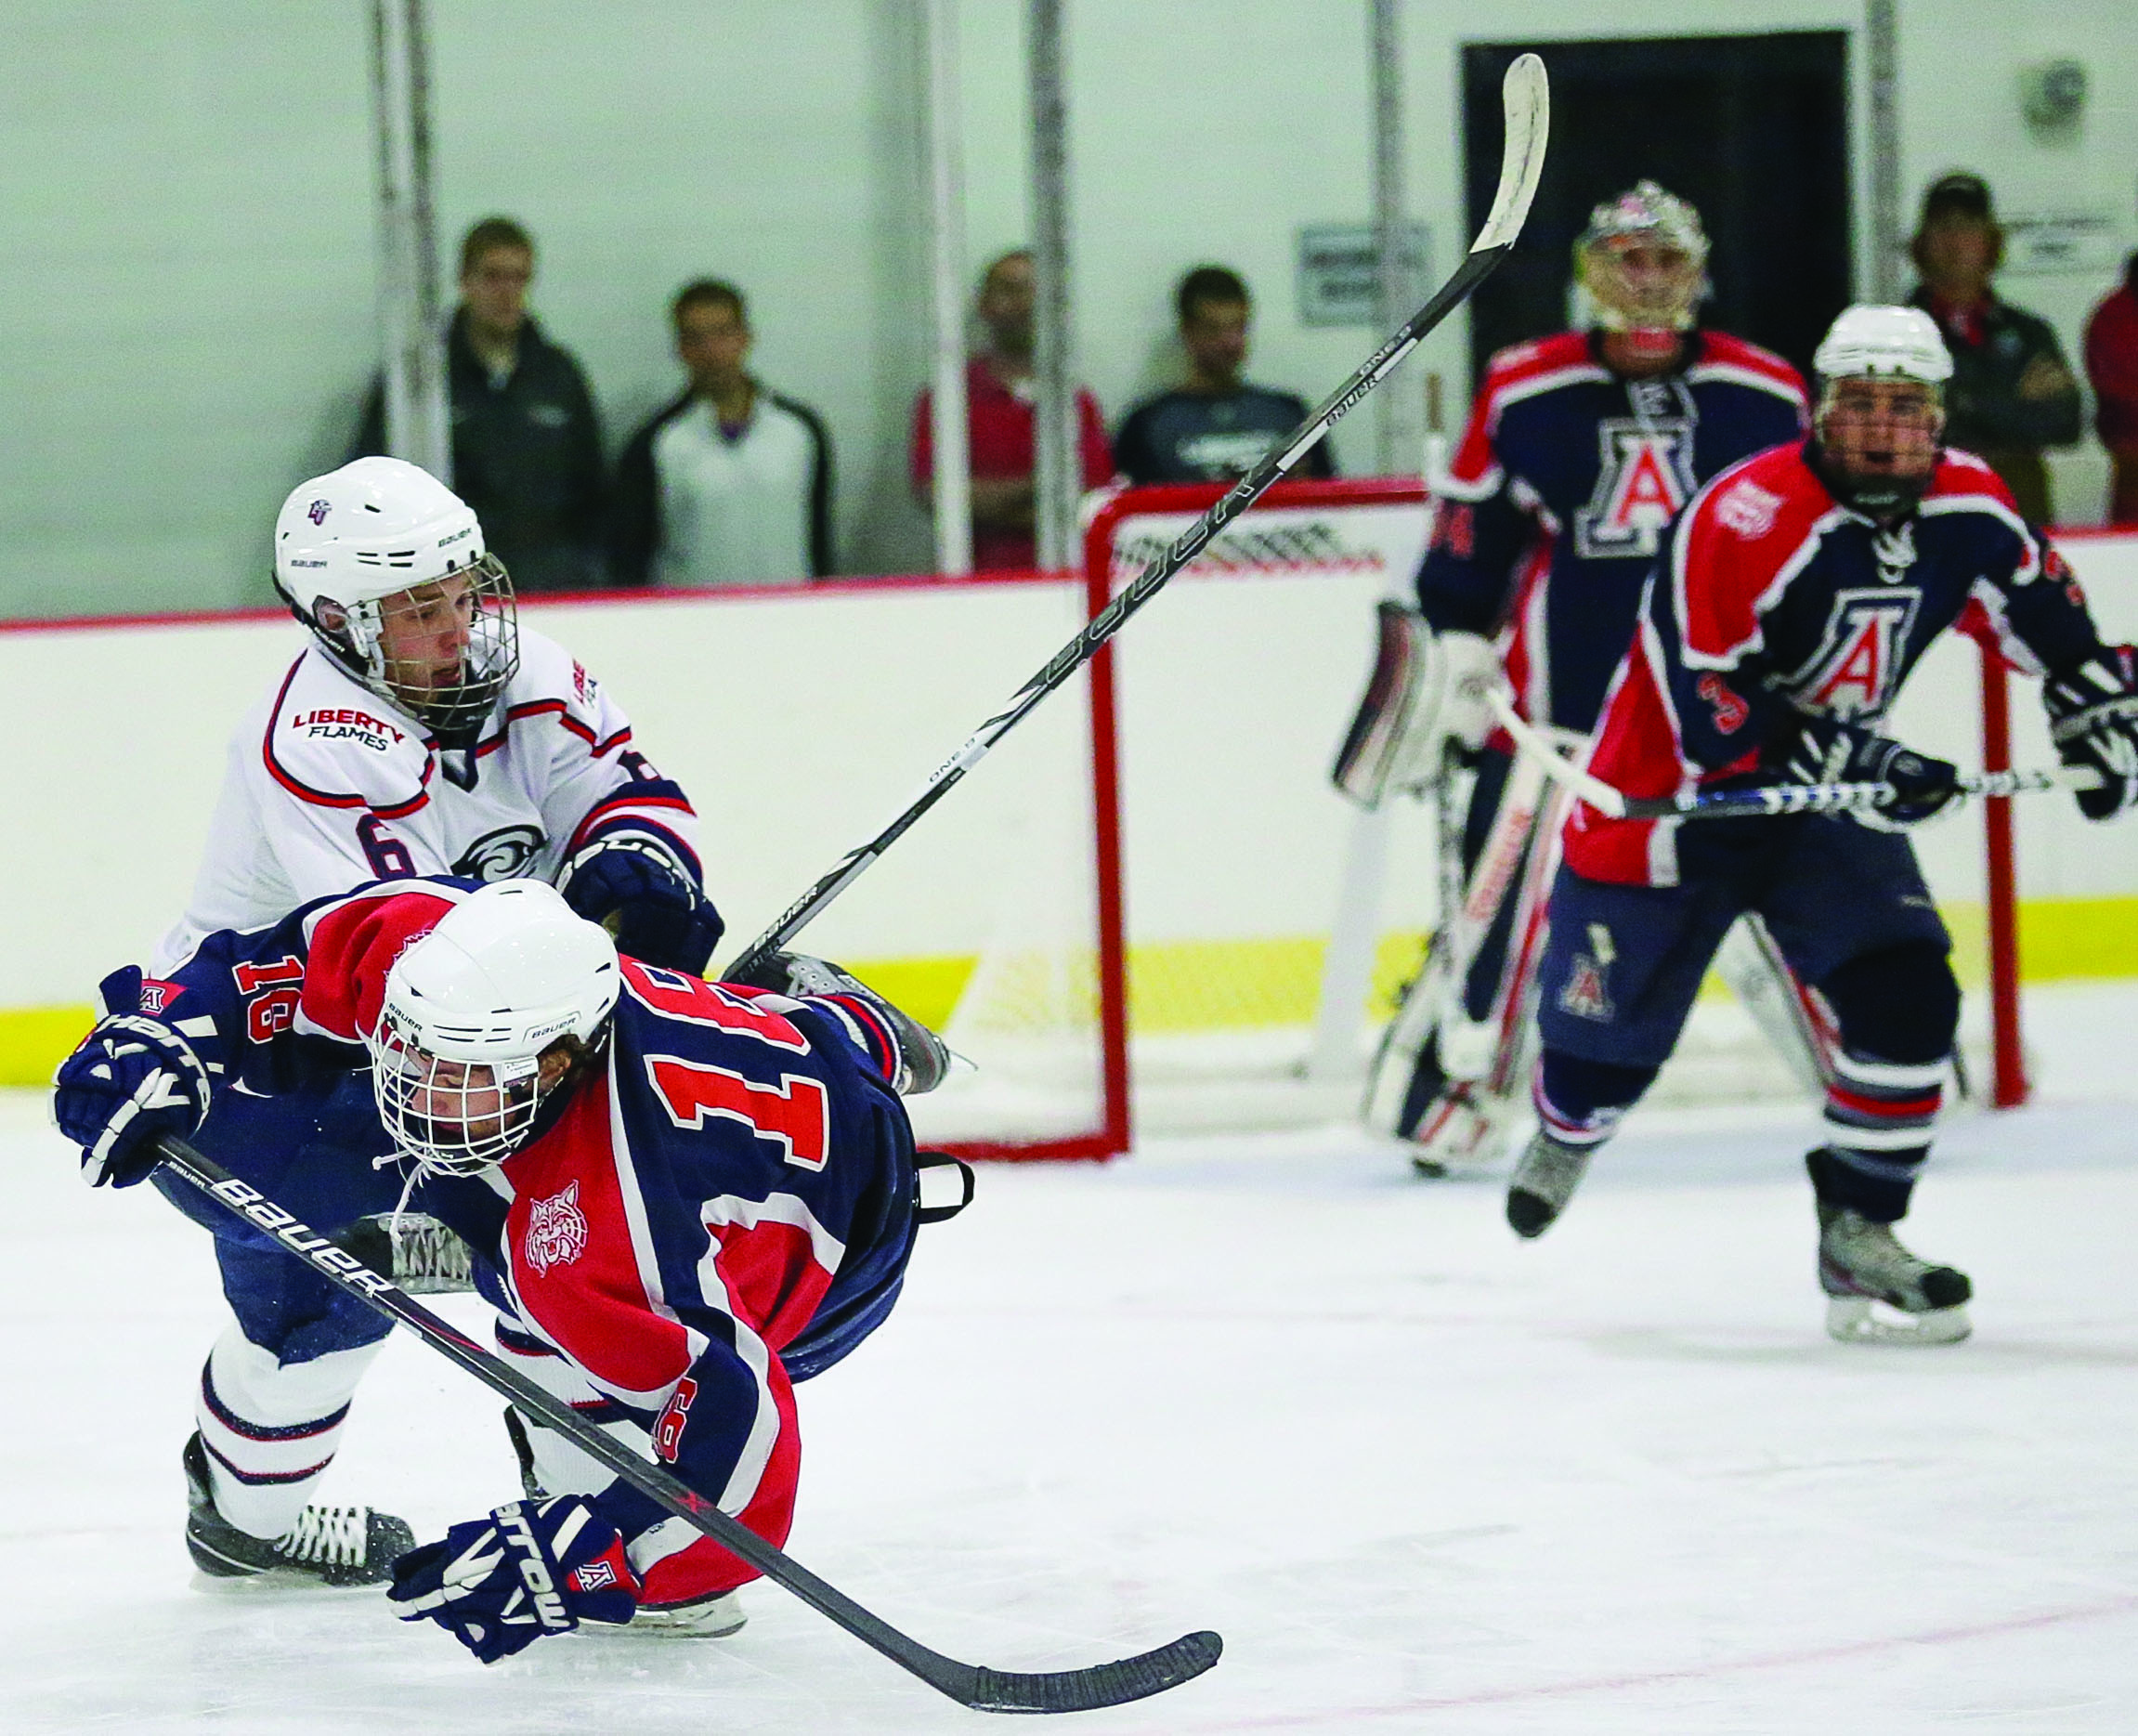 BIG HITS — Liberty rebounded to thrash Arizona in game two. Photo credit: Ruth Bibby